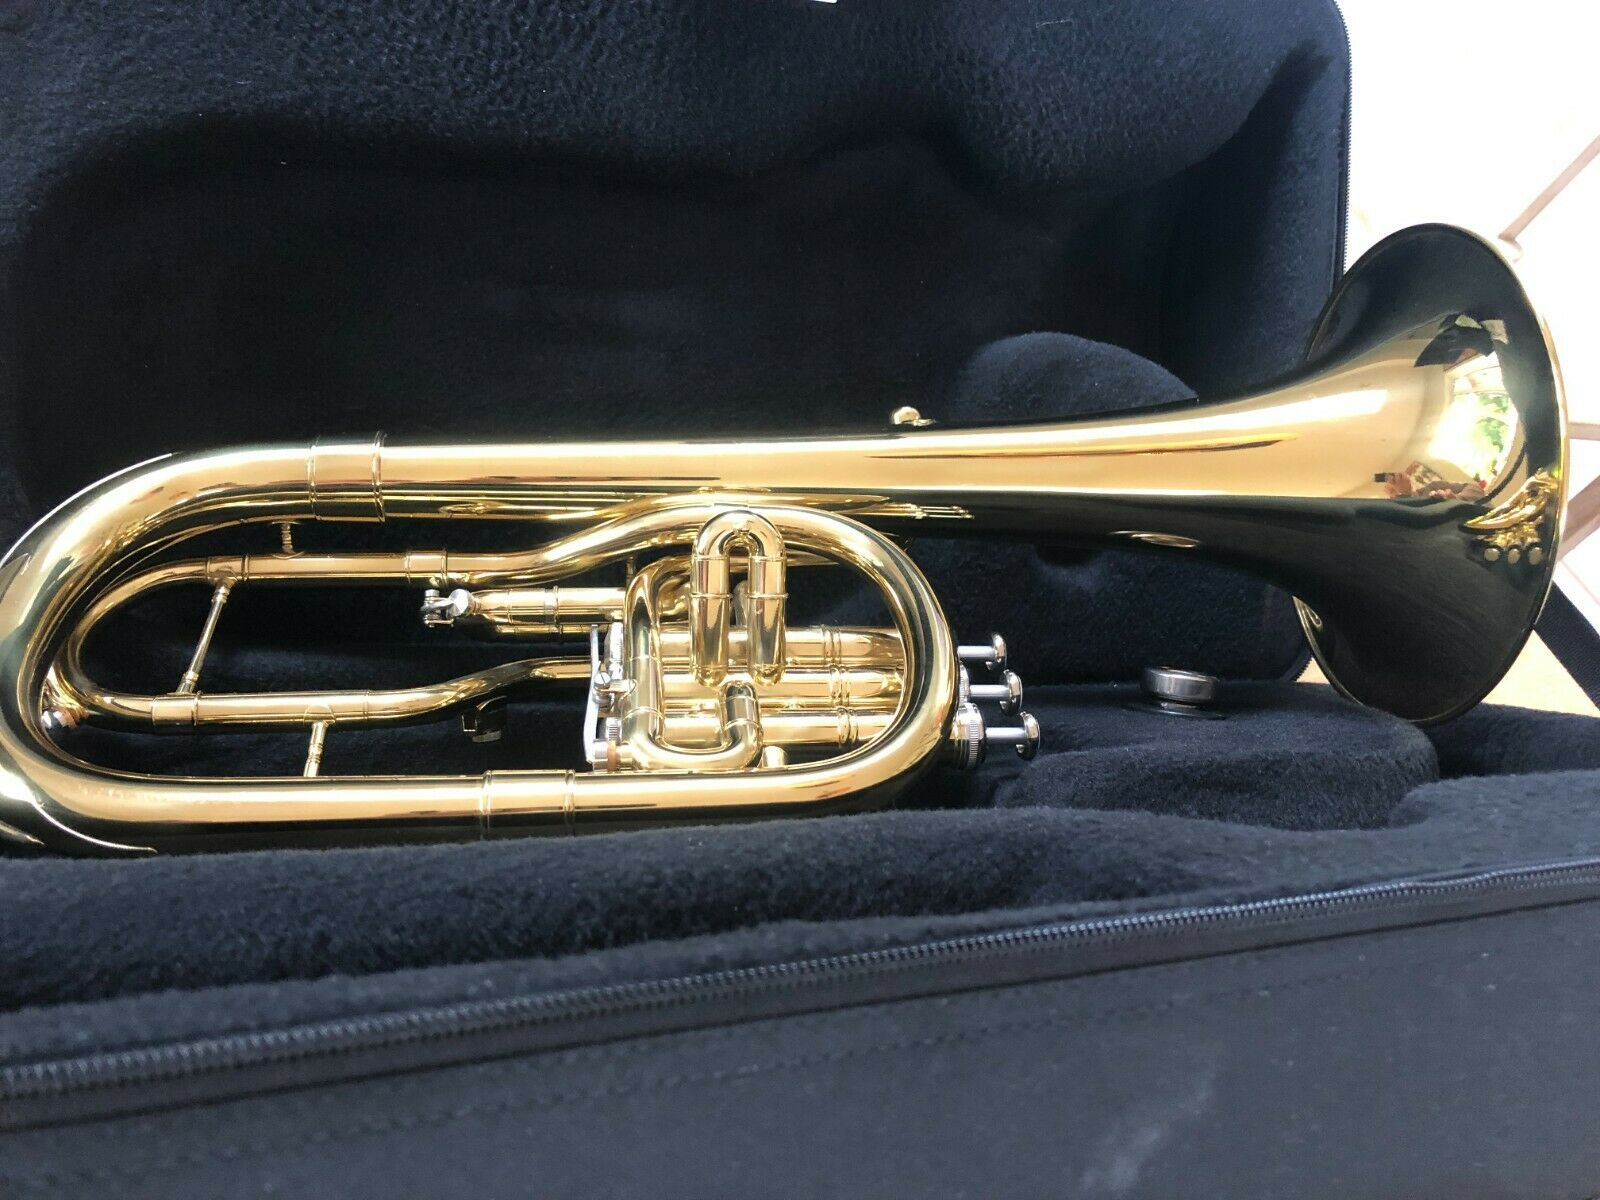 Catelinet CTH12 Tenor Horn Brass Includes Case and Mouthpiece - Free Delivery